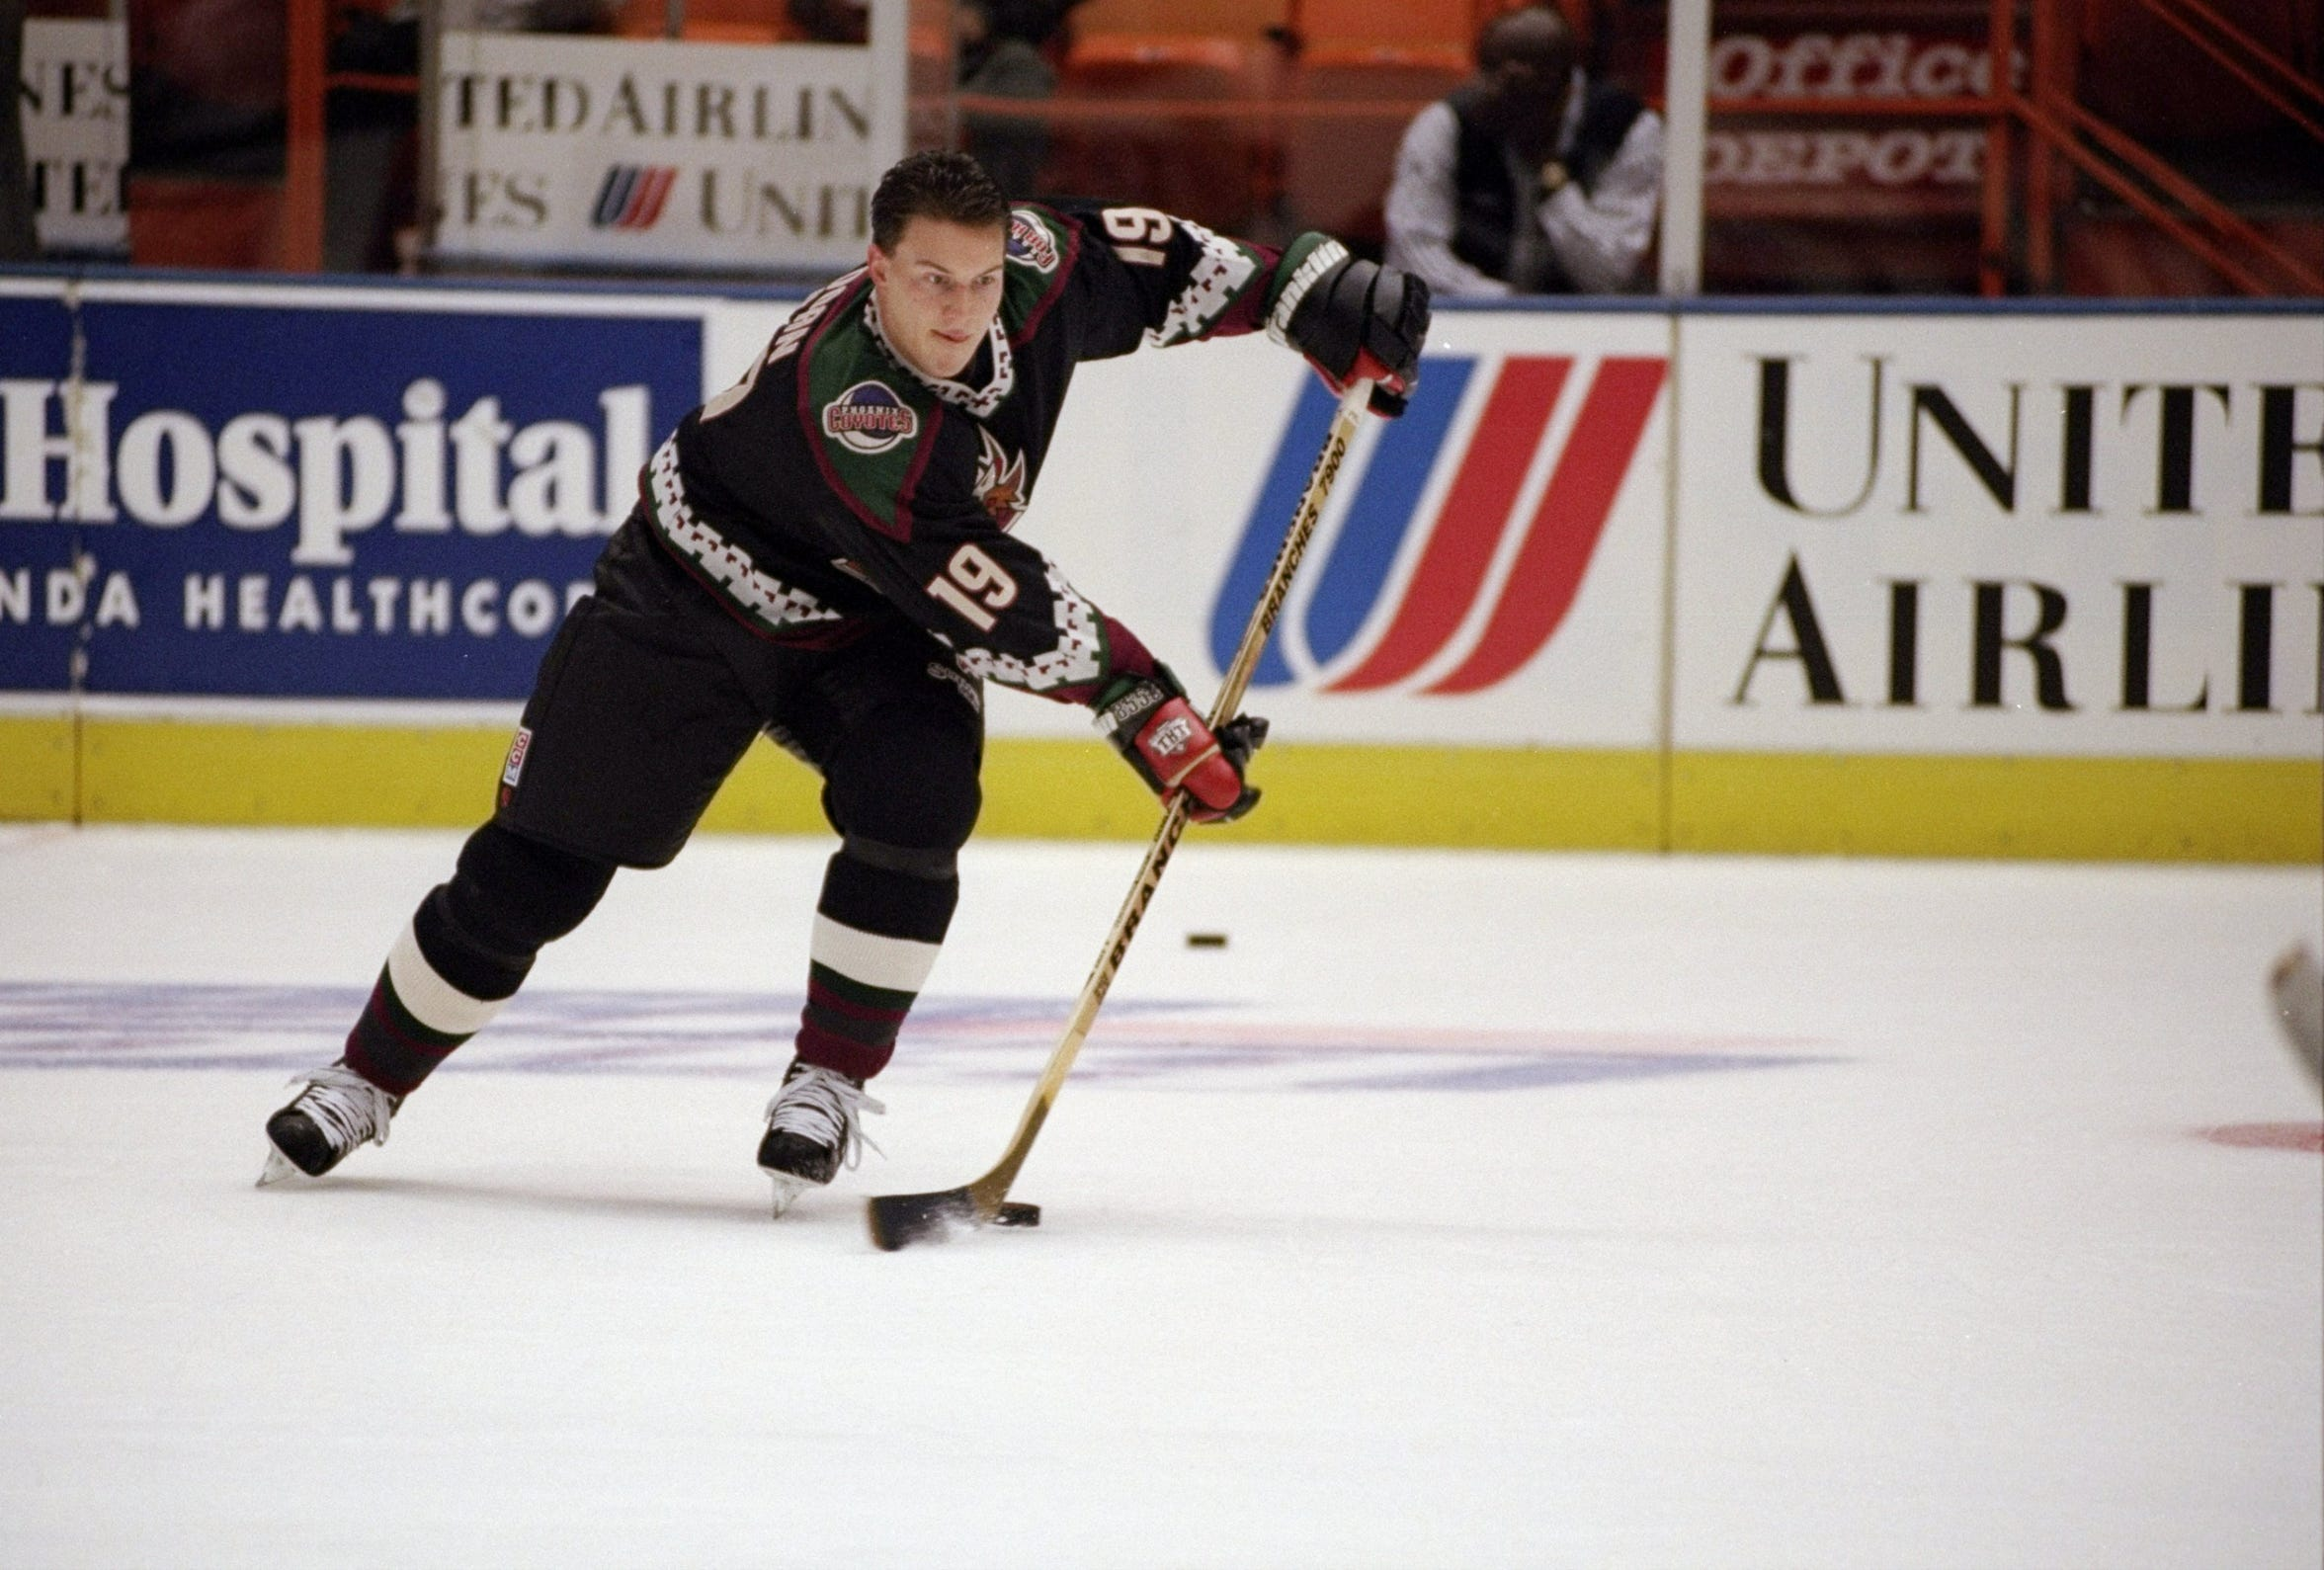 Shane Doan moves the puck before a game against the Kings in 1996.